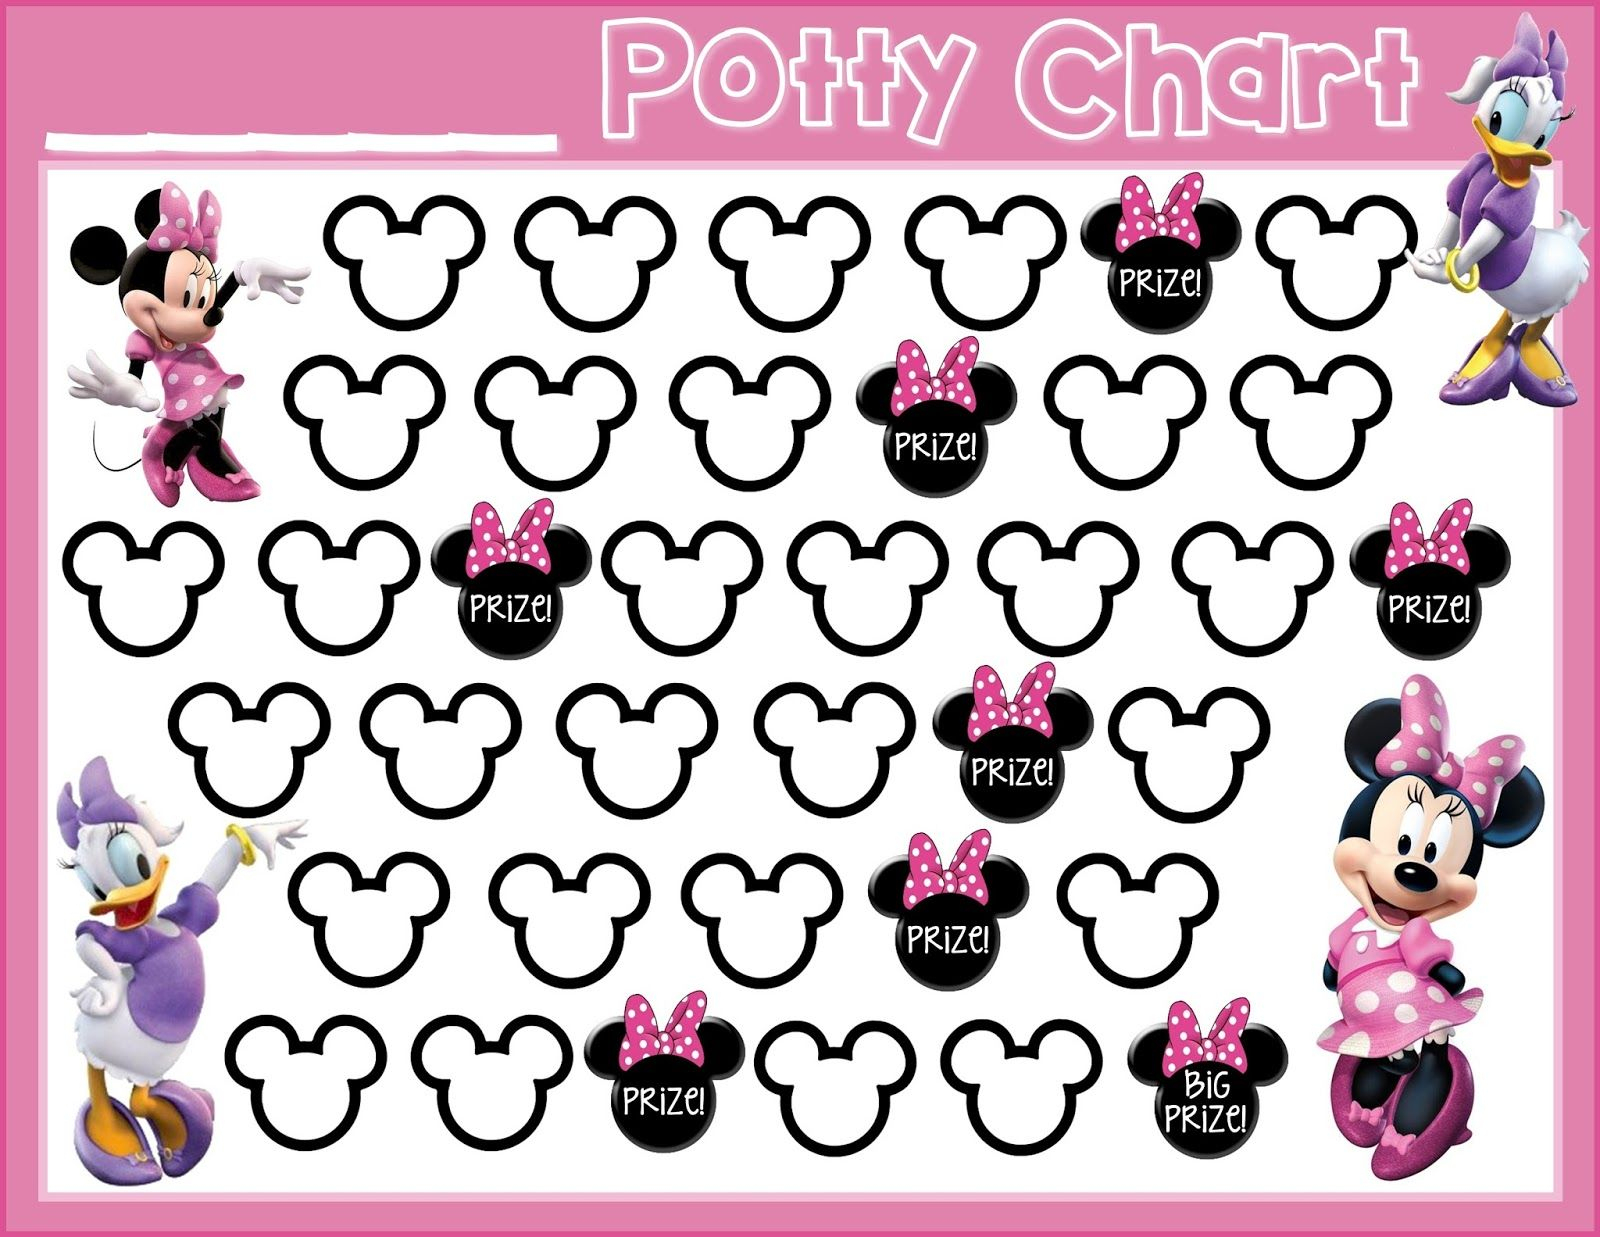 Potty Training! {Free Printable} Minnie Mouse Daisy Duck Free - Free Printable Minnie Mouse Potty Training Chart